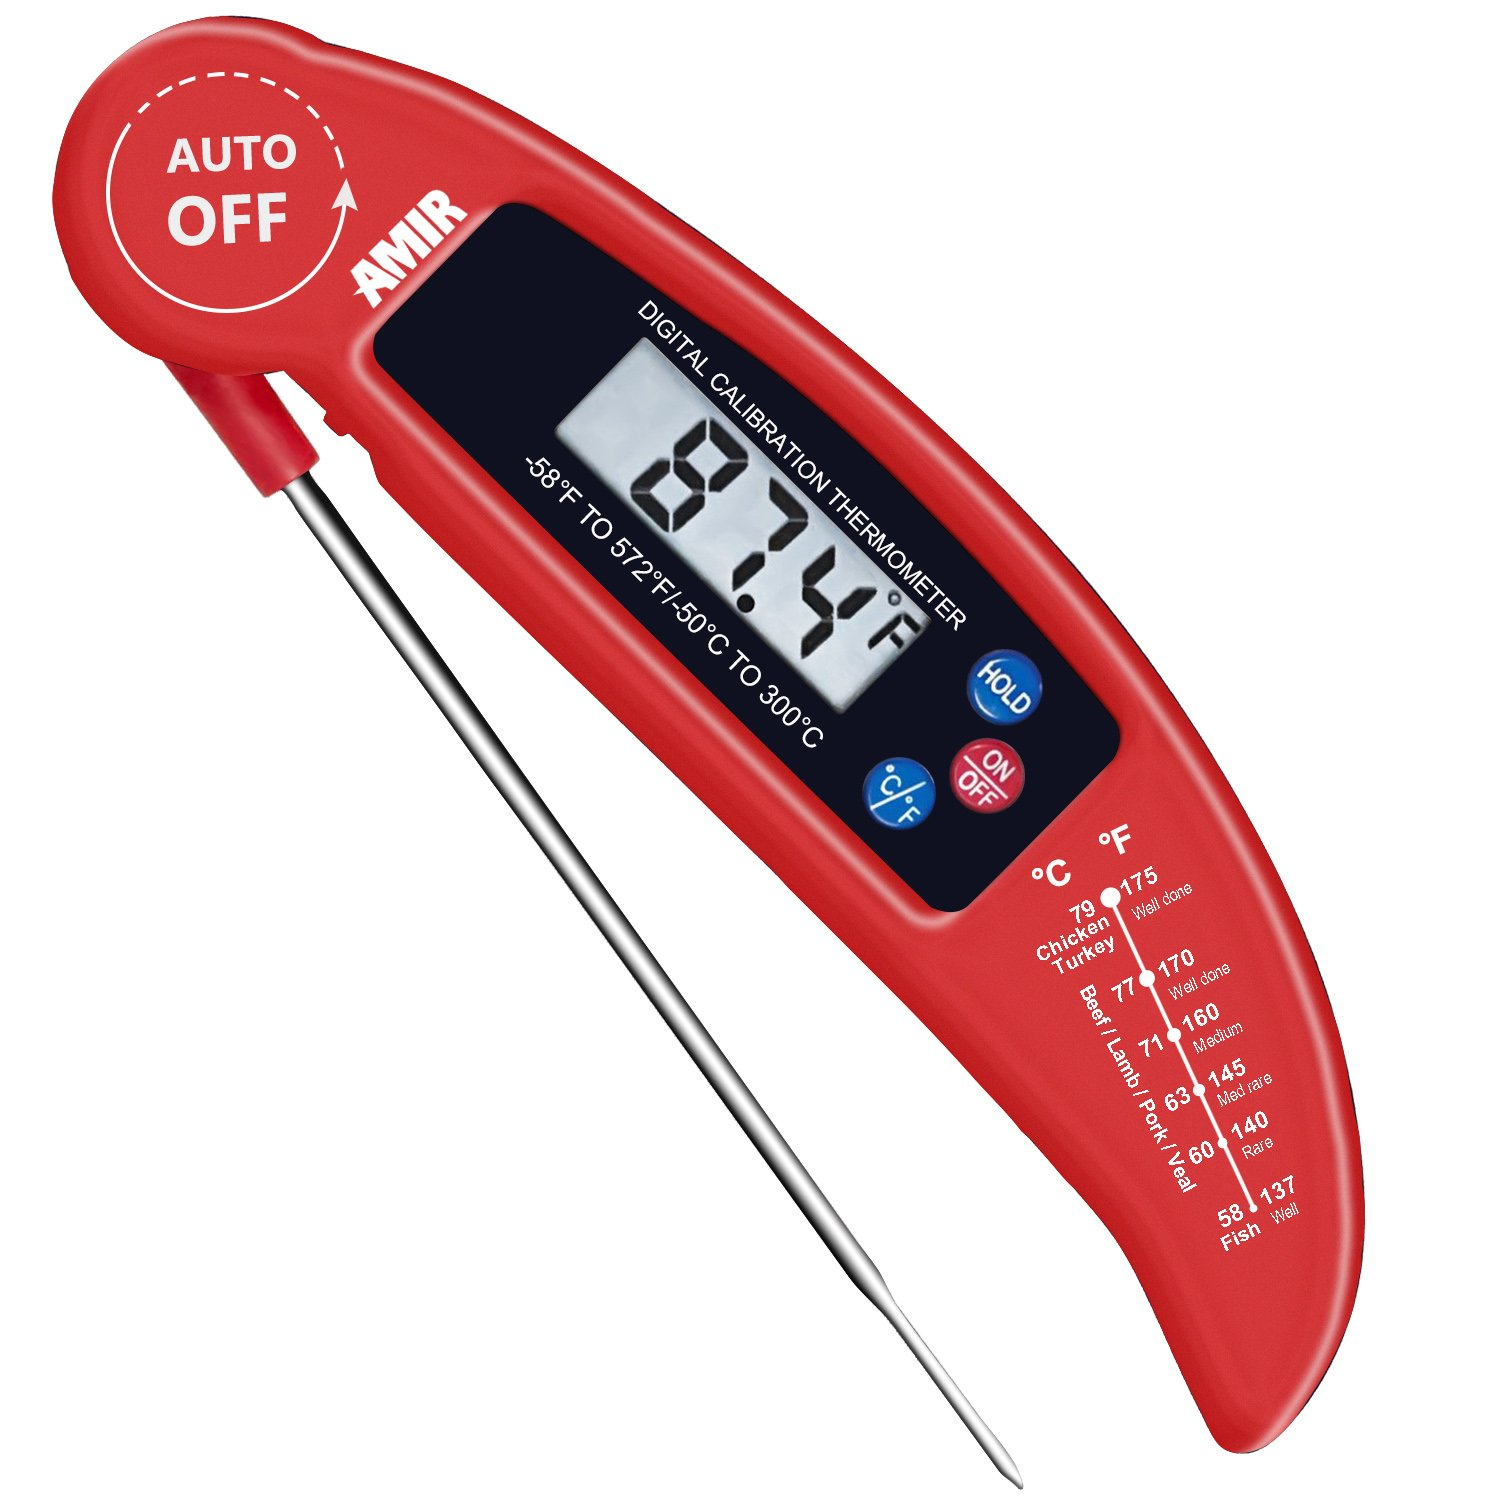 AMIR Food Thermometer, Digital Instant Read Candy/ Meat Thermometer With  Probe For Kitchen Cooking, BBQ, Poultry, Grill, Foldable, Fast U0026 Auto On/  Off, ...